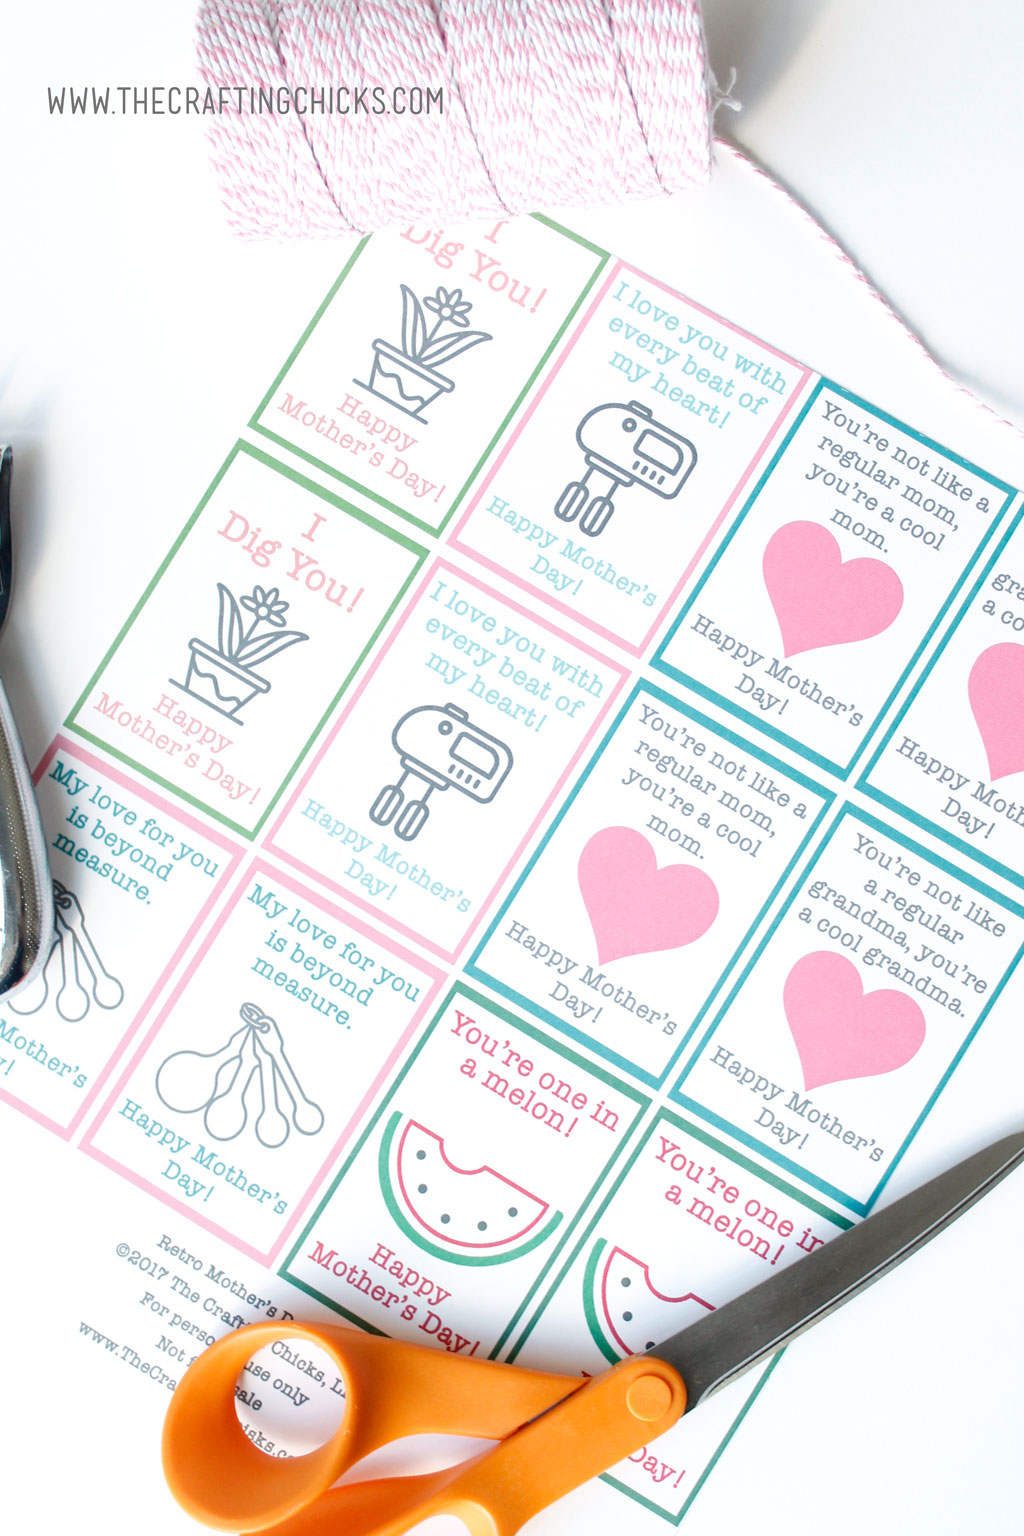 Retro Mother's Day Tags and Gift Ideas